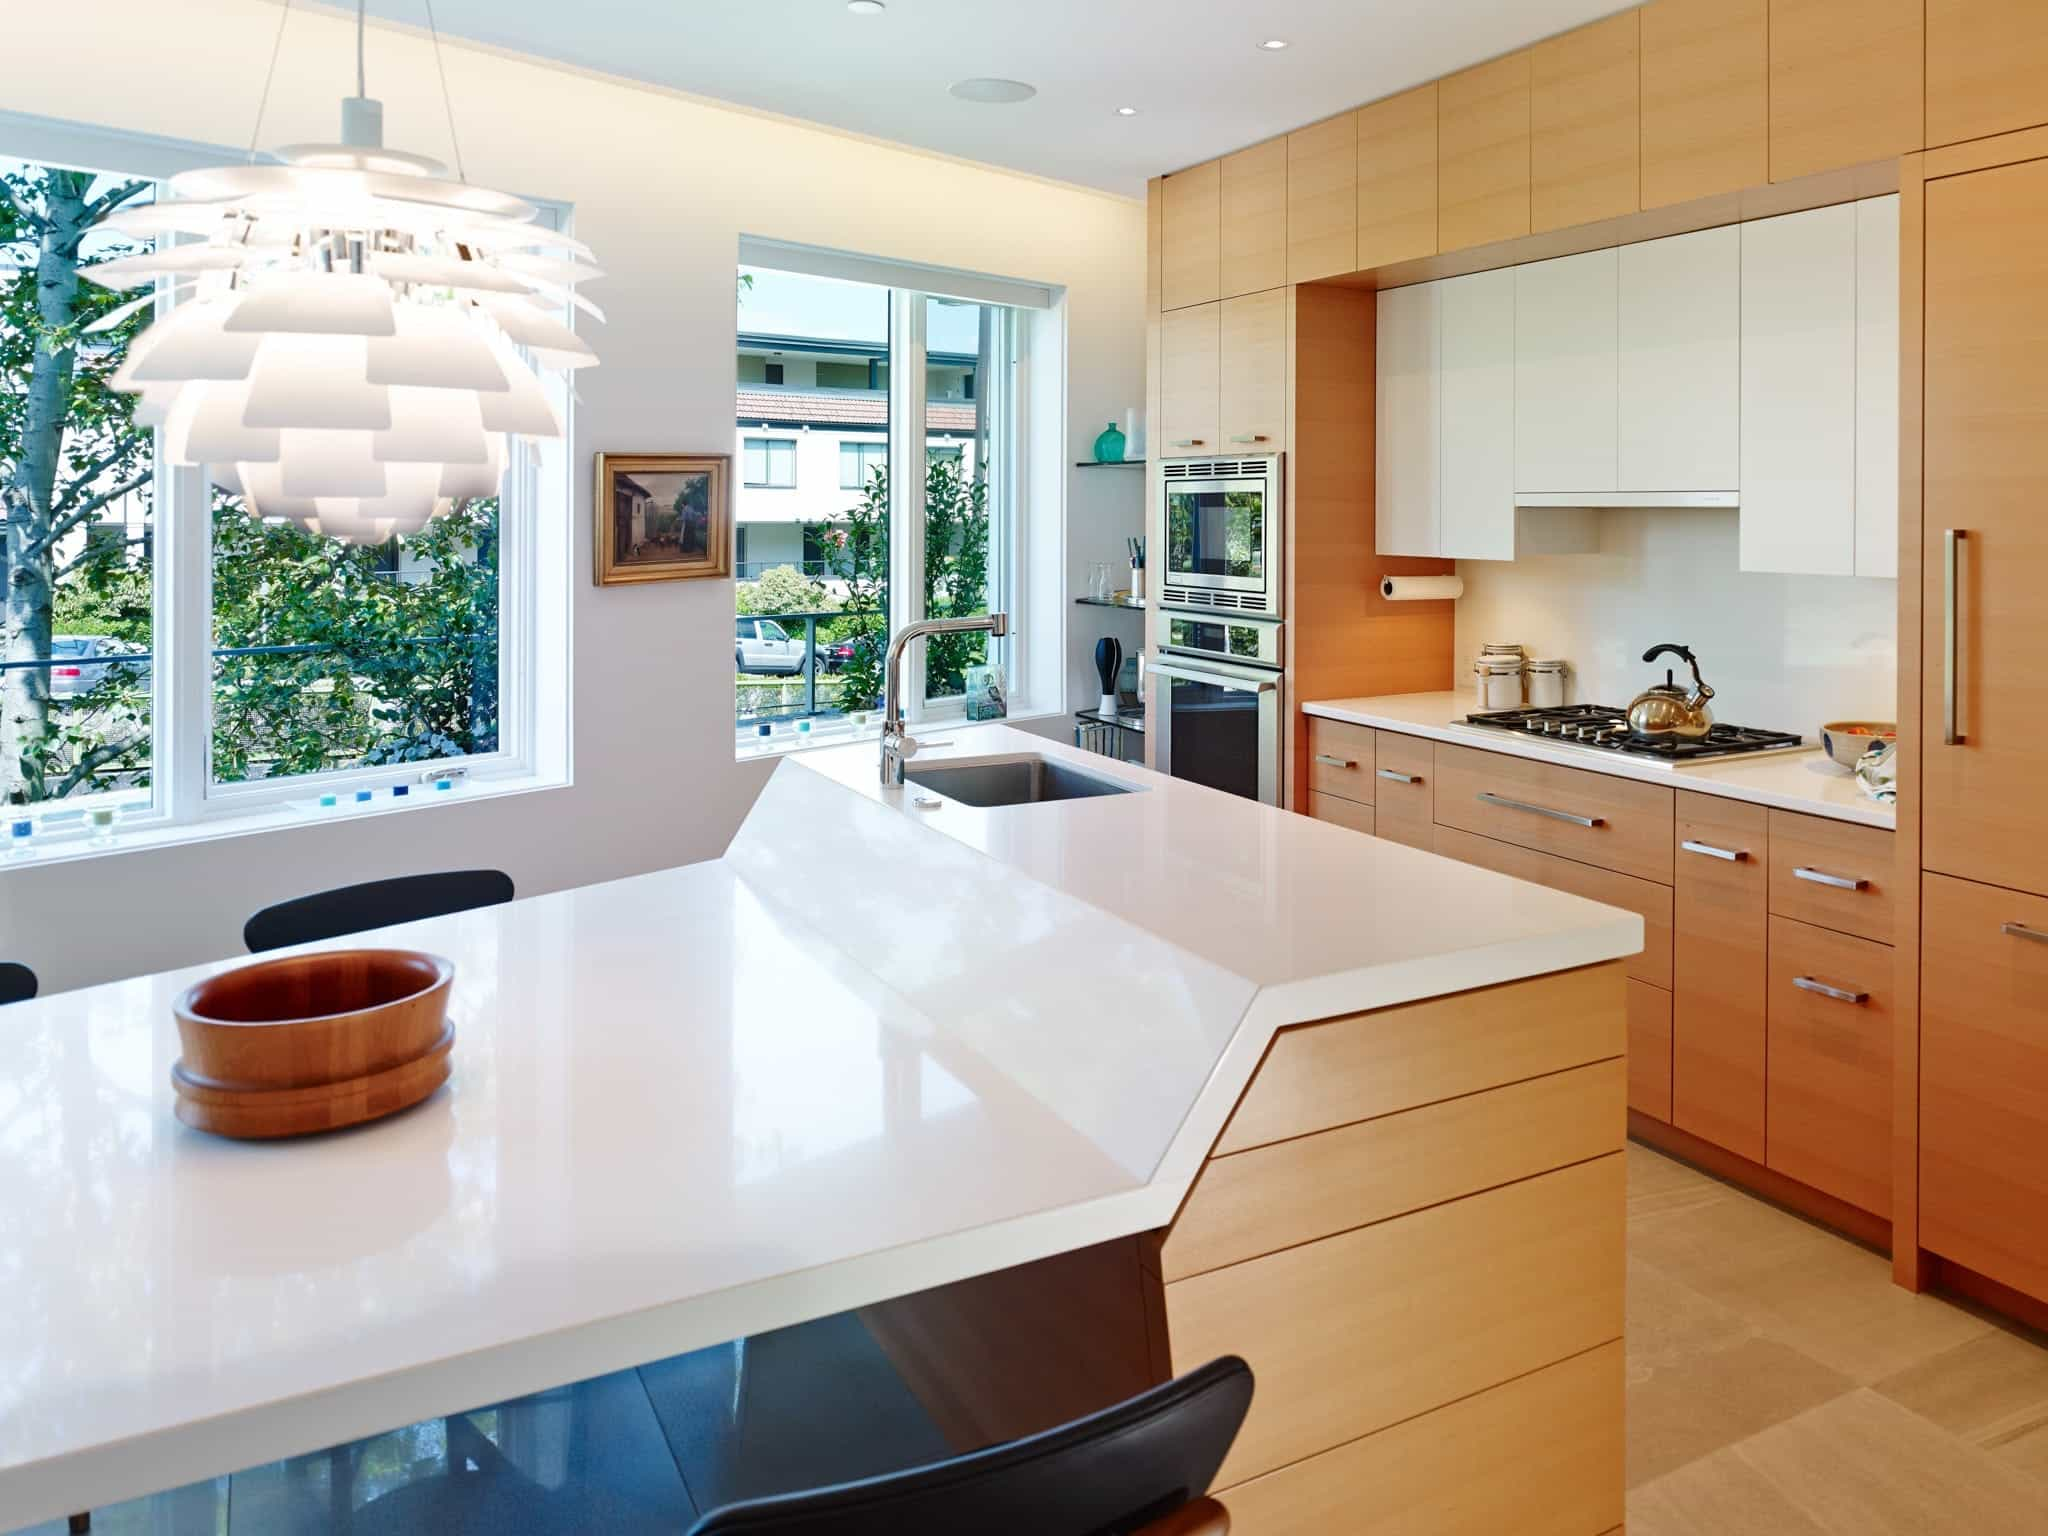 Modern Kitchen With Unique Island Design And Contemporary Cabinets (Image 19 of 26)